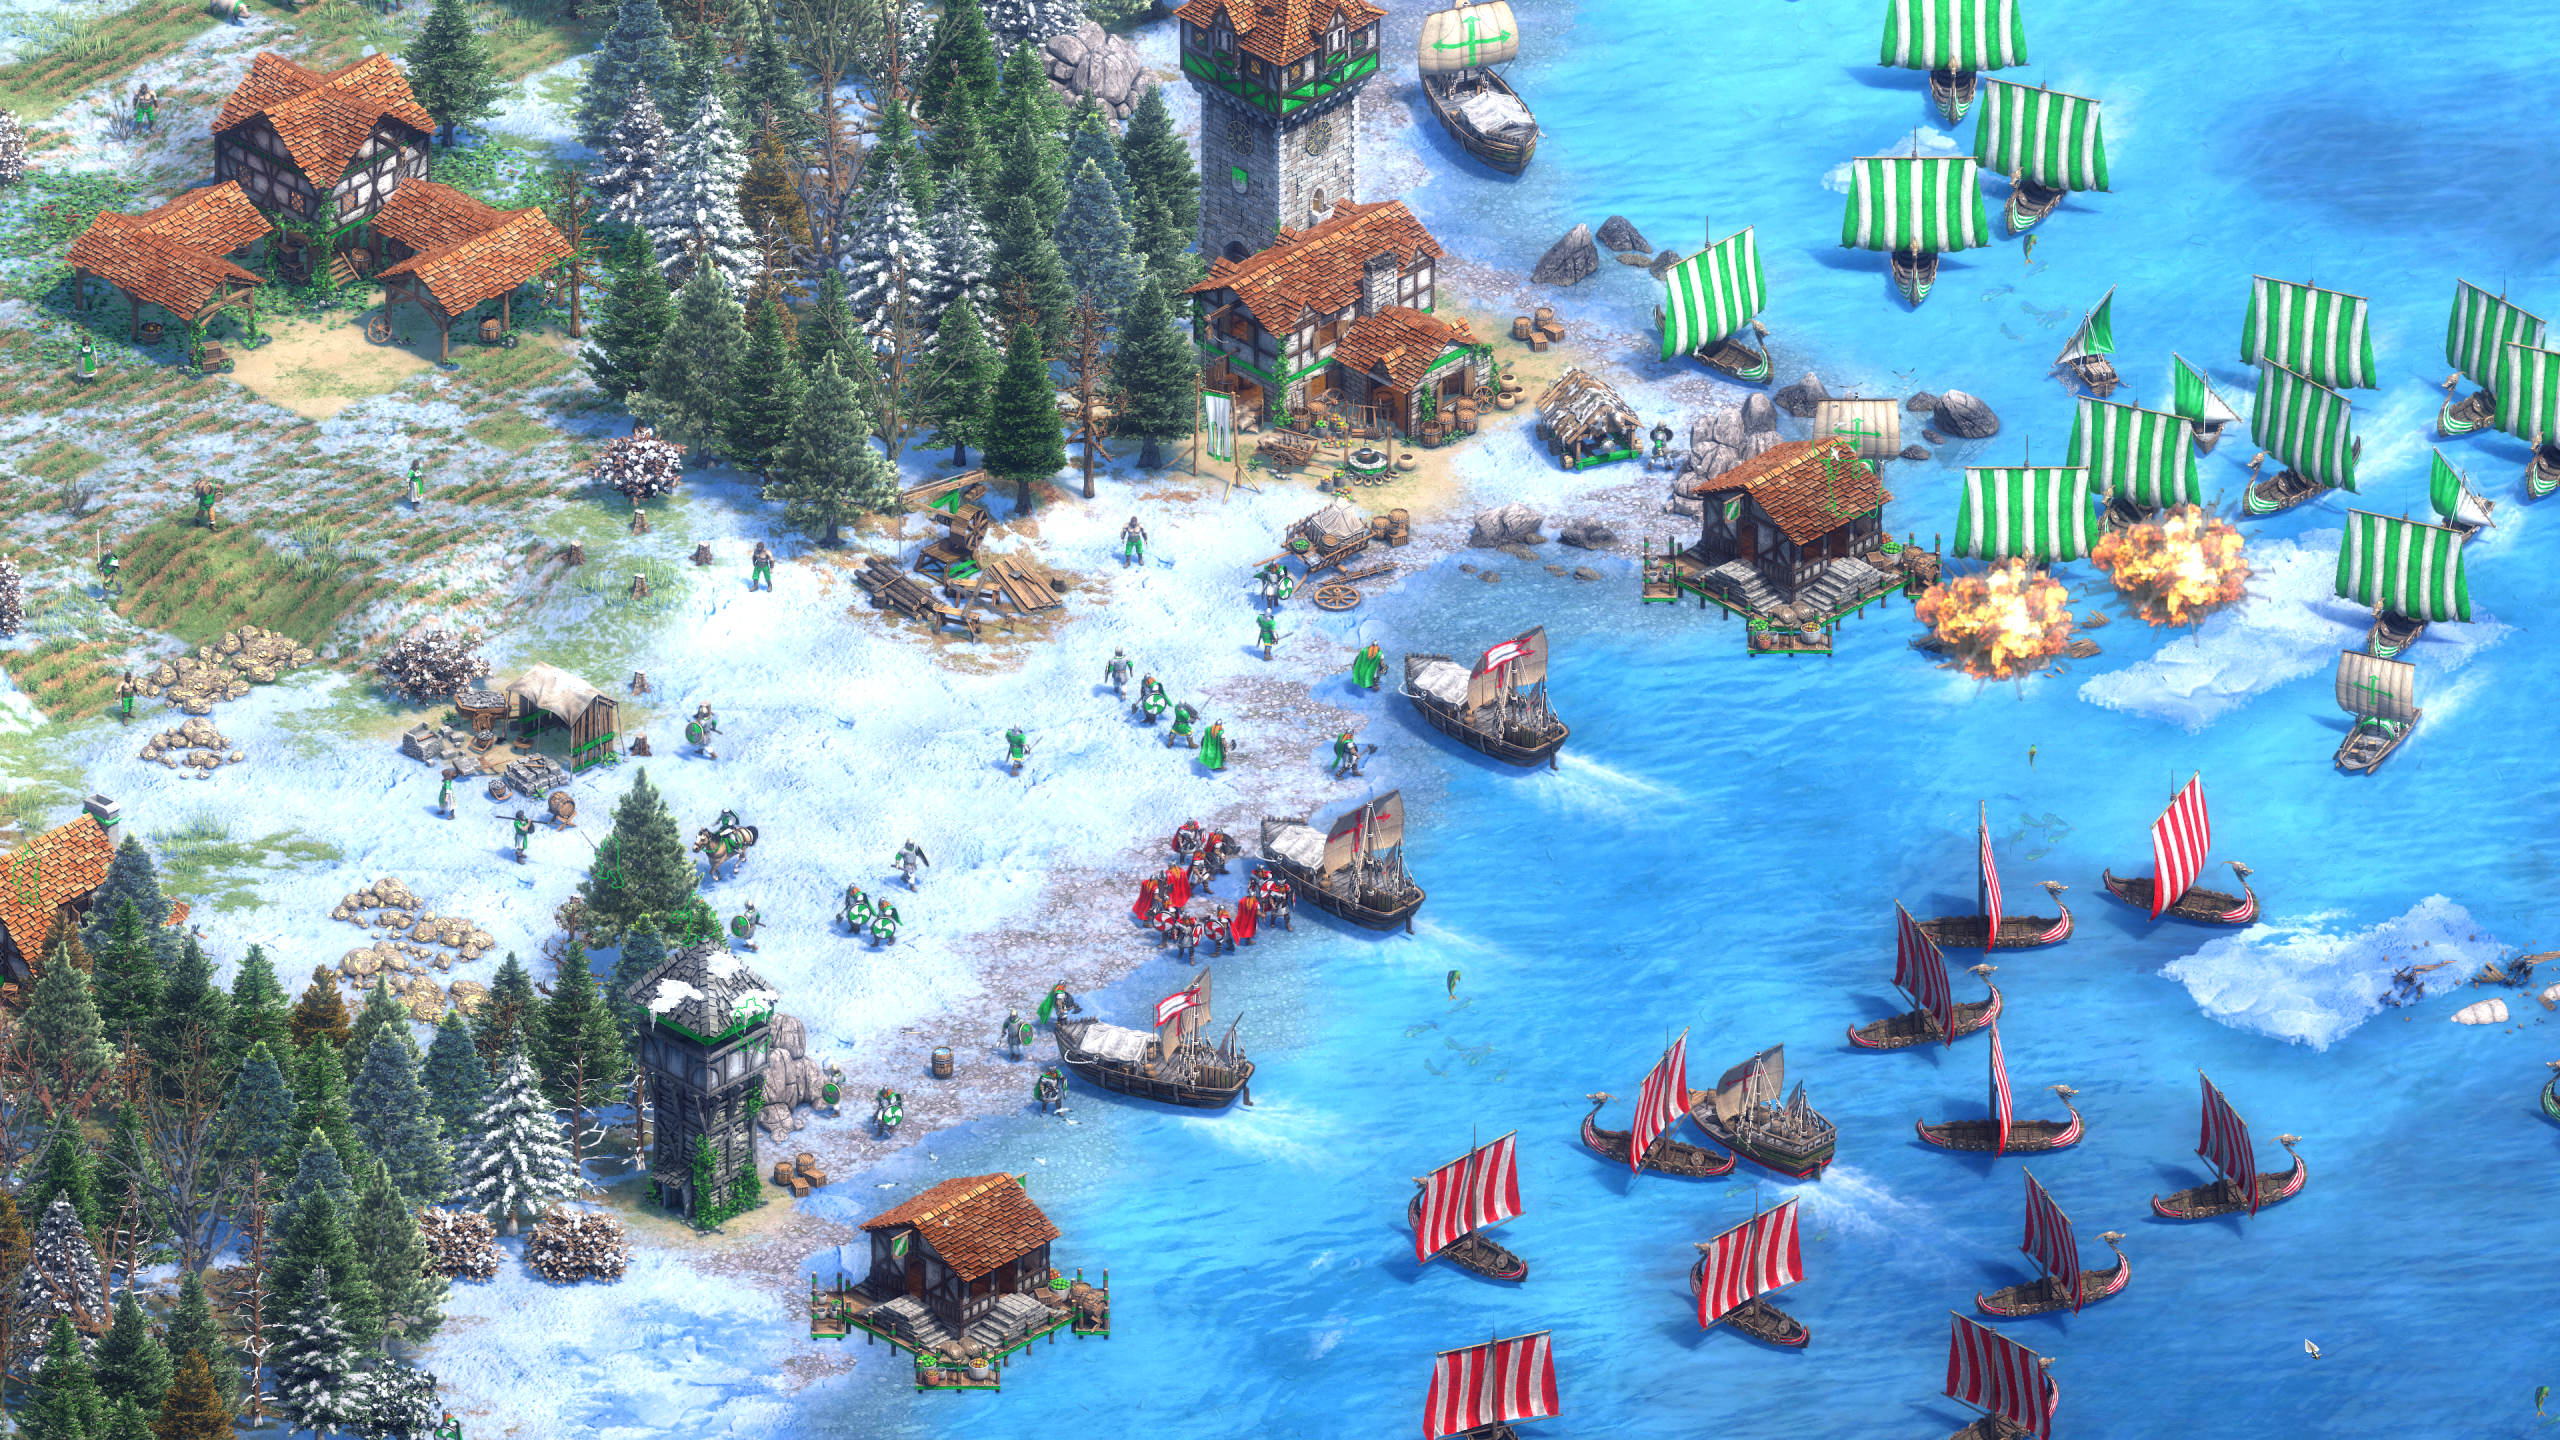 Vikings in Age of Empires II: Definitive Edition